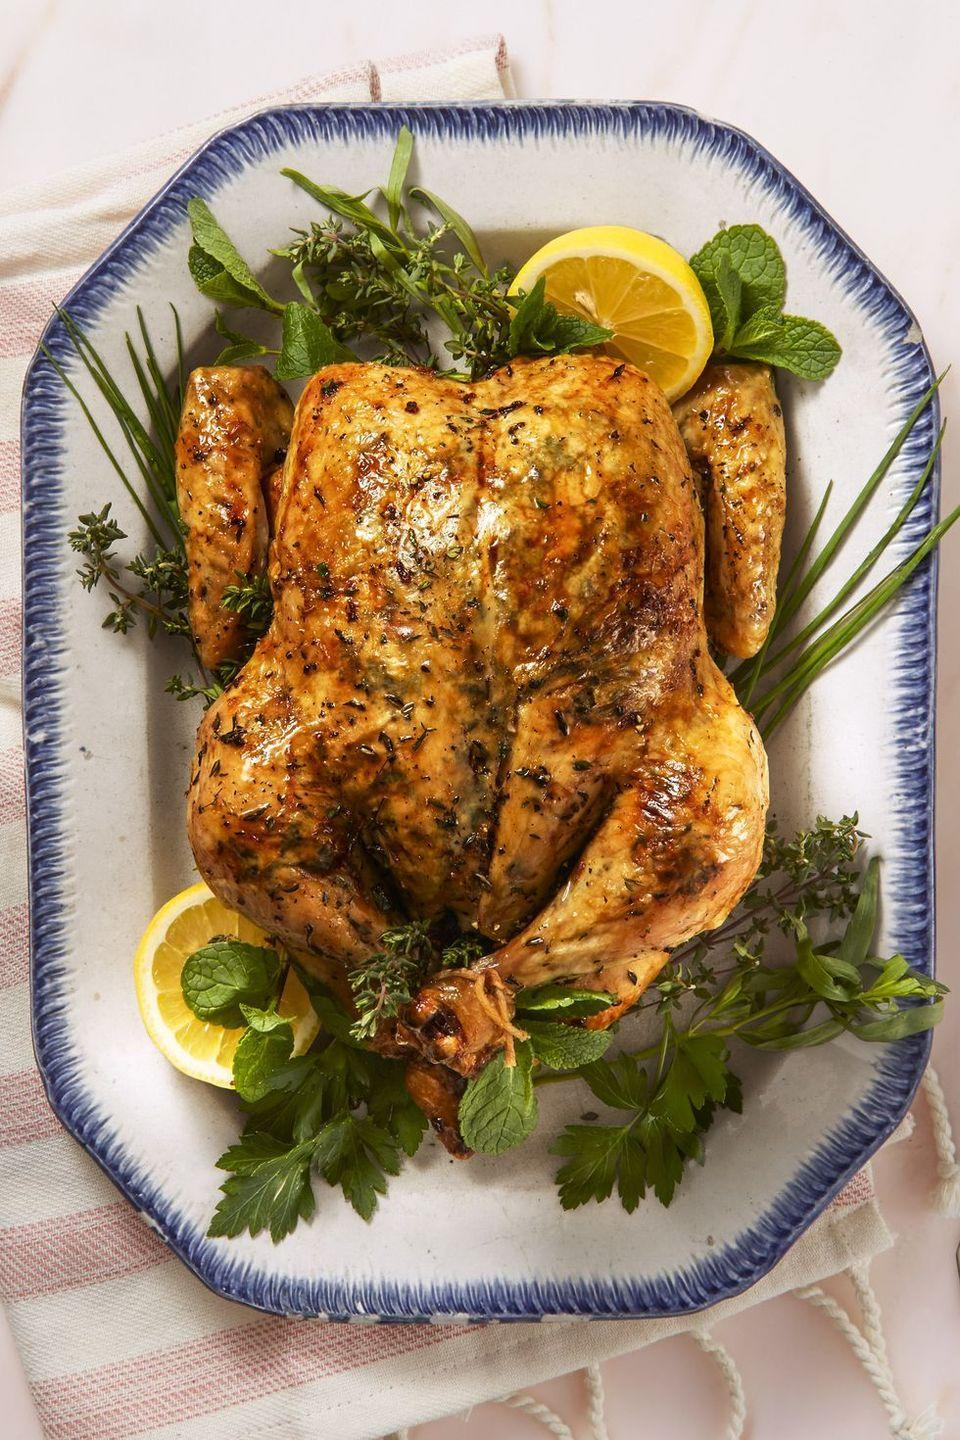 """<p>We love chicken all the ways, but especially rubbed down with lemon-garlic butter.</p><p><em><a href=""""https://www.goodhousekeeping.com/food-recipes/healthy/a43668/lemony-herb-roast-chicken-recipe/"""" rel=""""nofollow noopener"""" target=""""_blank"""" data-ylk=""""slk:Get the recipe for Lemony Herb Roast Chicken »"""" class=""""link rapid-noclick-resp"""">Get the recipe for Lemony Herb Roast Chicken »</a></em> </p>"""